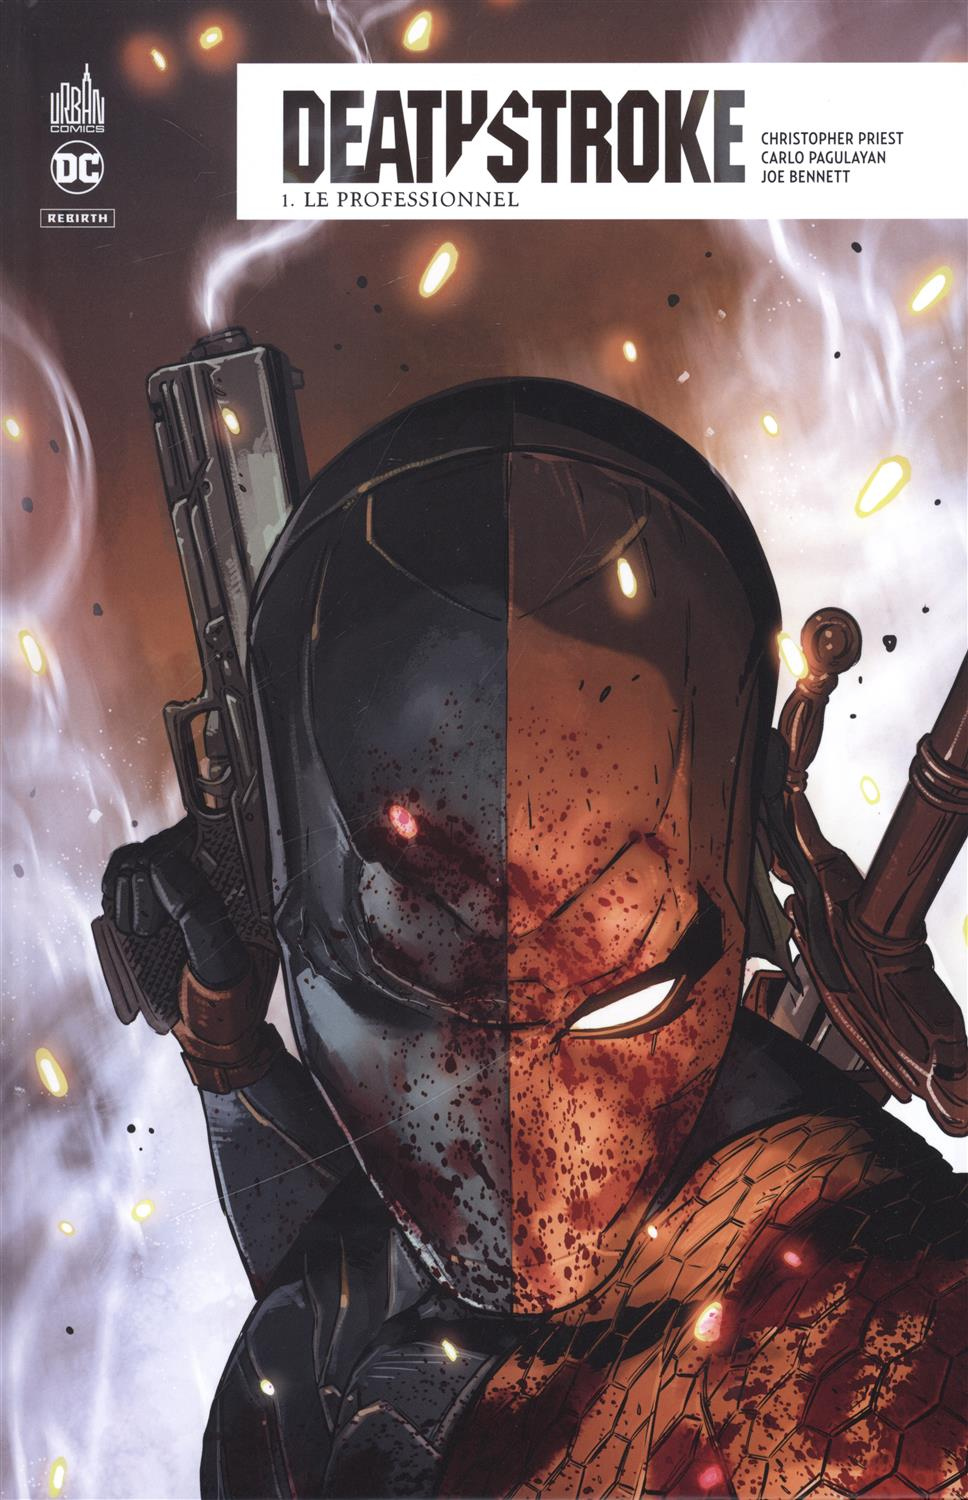 Deathstroke Tome 1 : Le professionnel